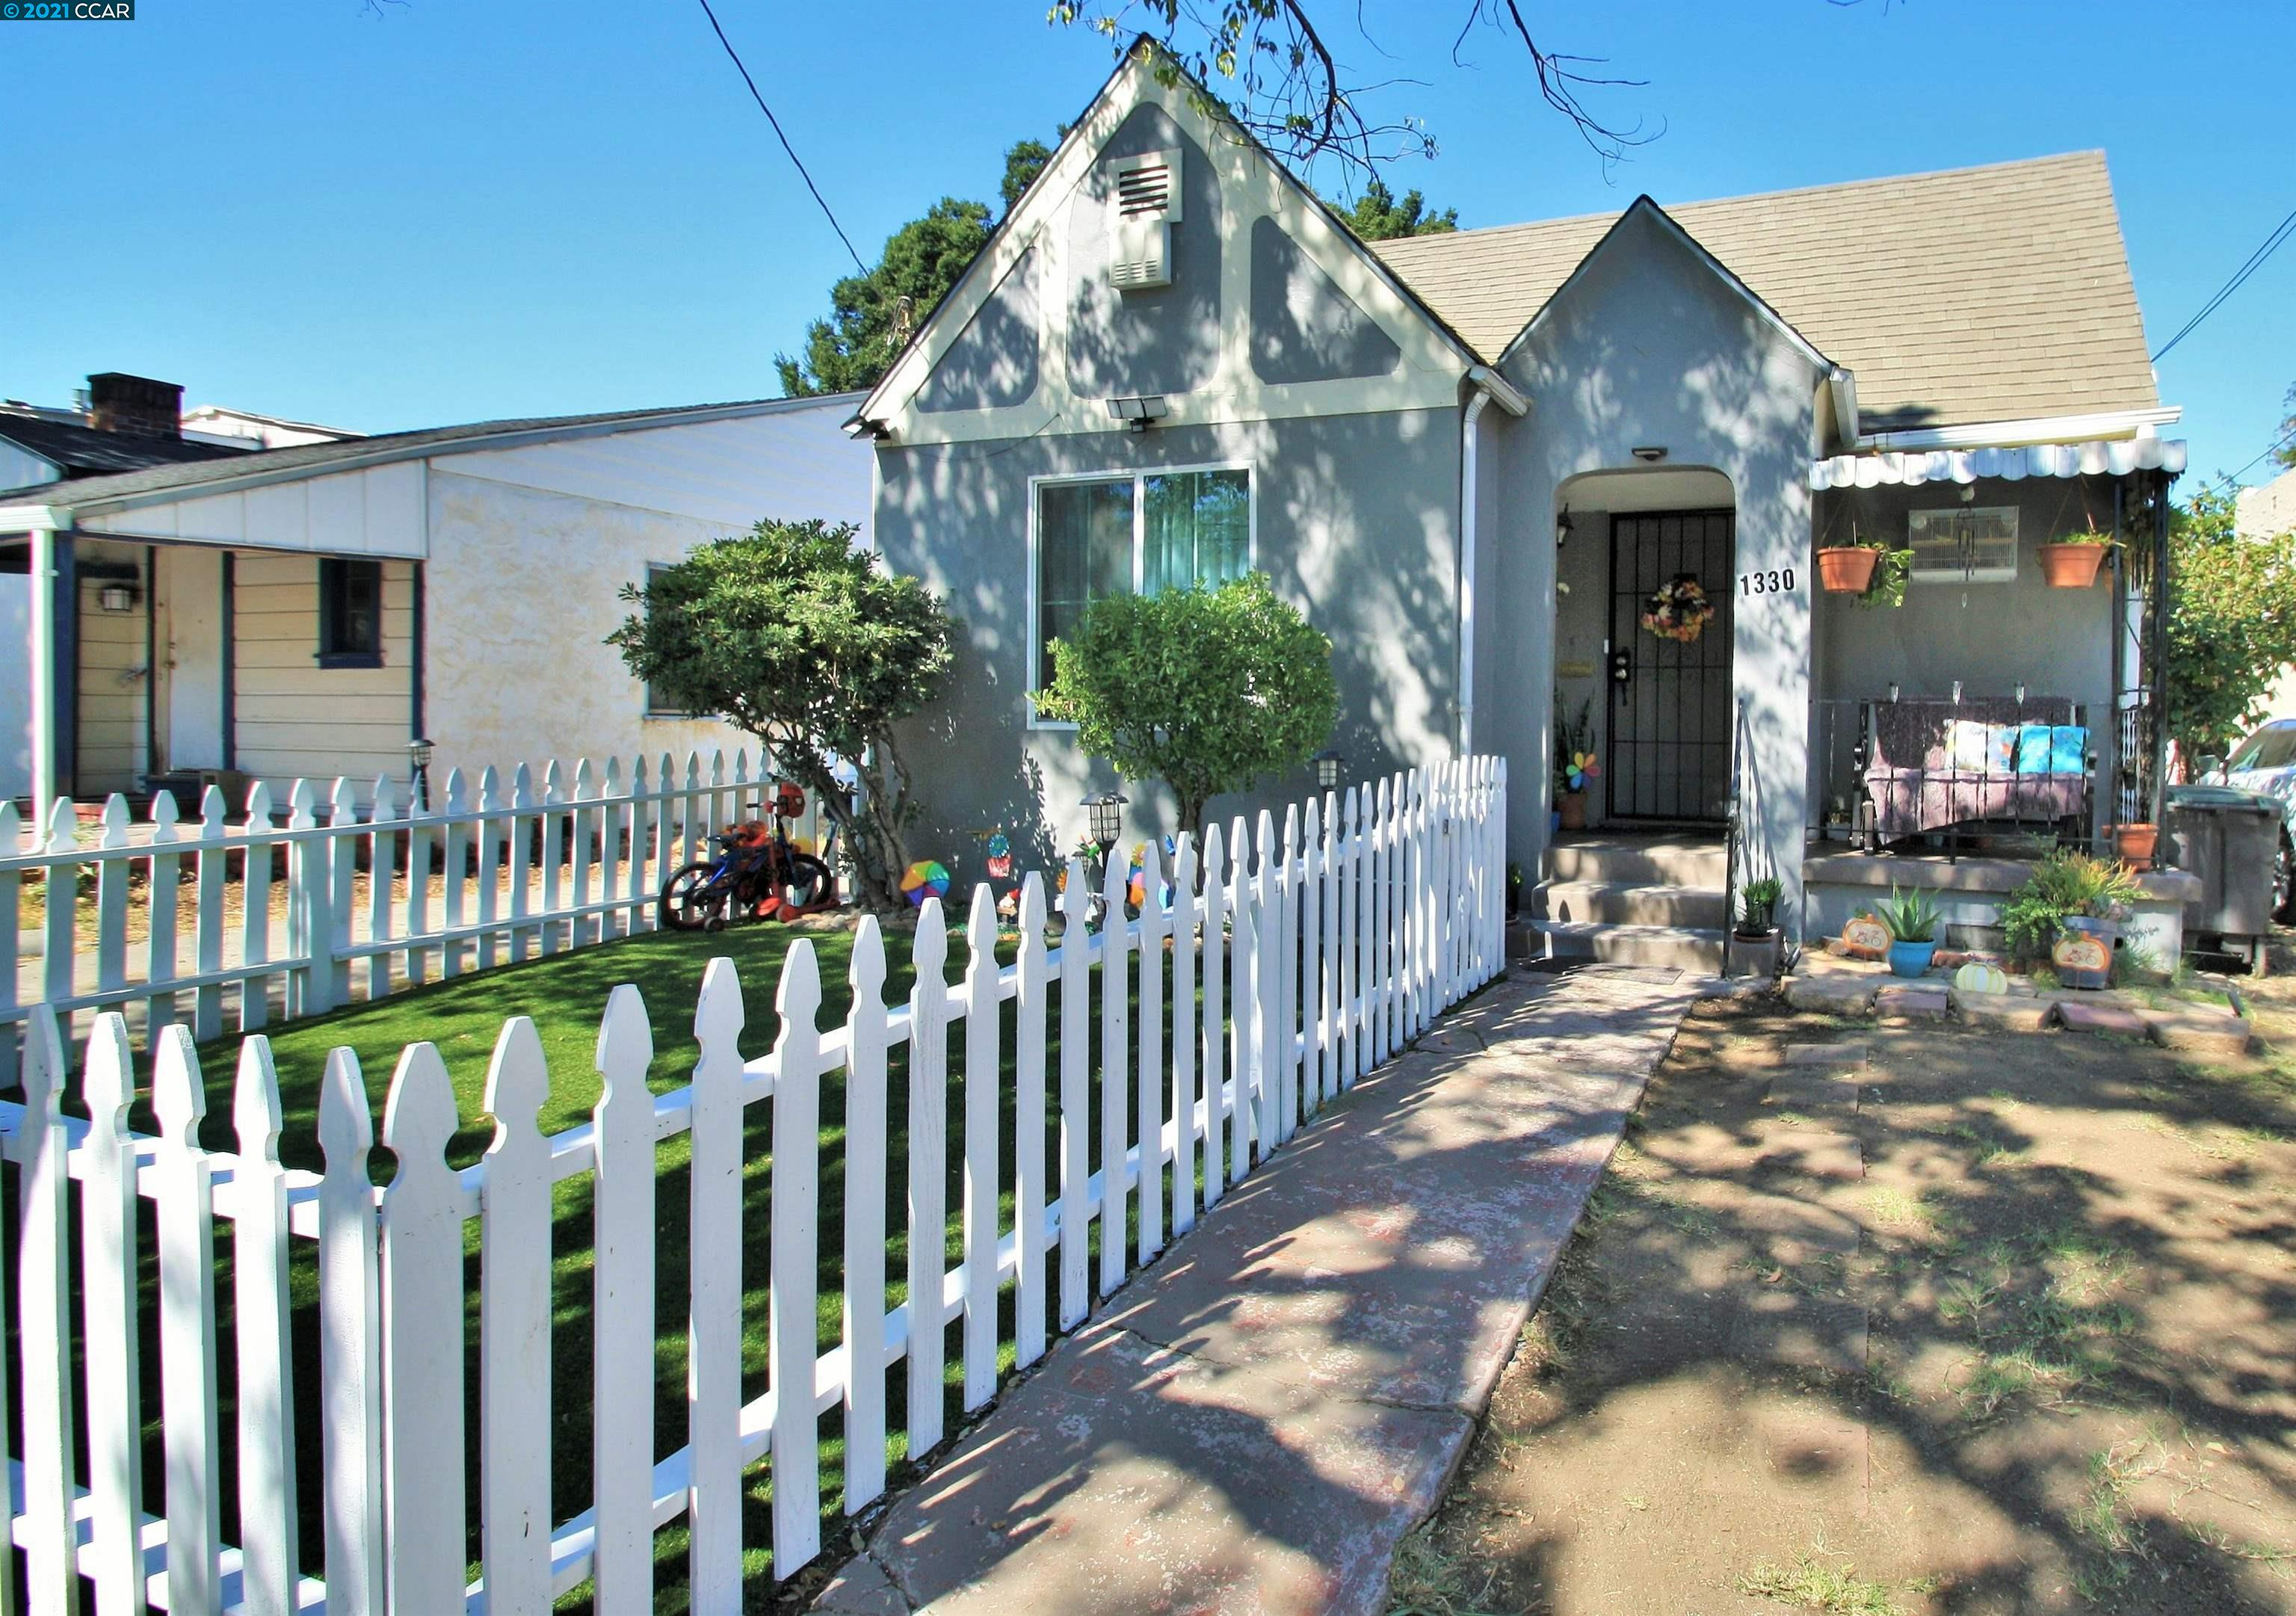 Nicely remodeled home in quiet, tree-lined Old Pittsburg neighborhood. 2 bedroom, 1 bath in front with potential 1/1 in-law unit in rear. Long driveway, detached garage and good sized backyard.